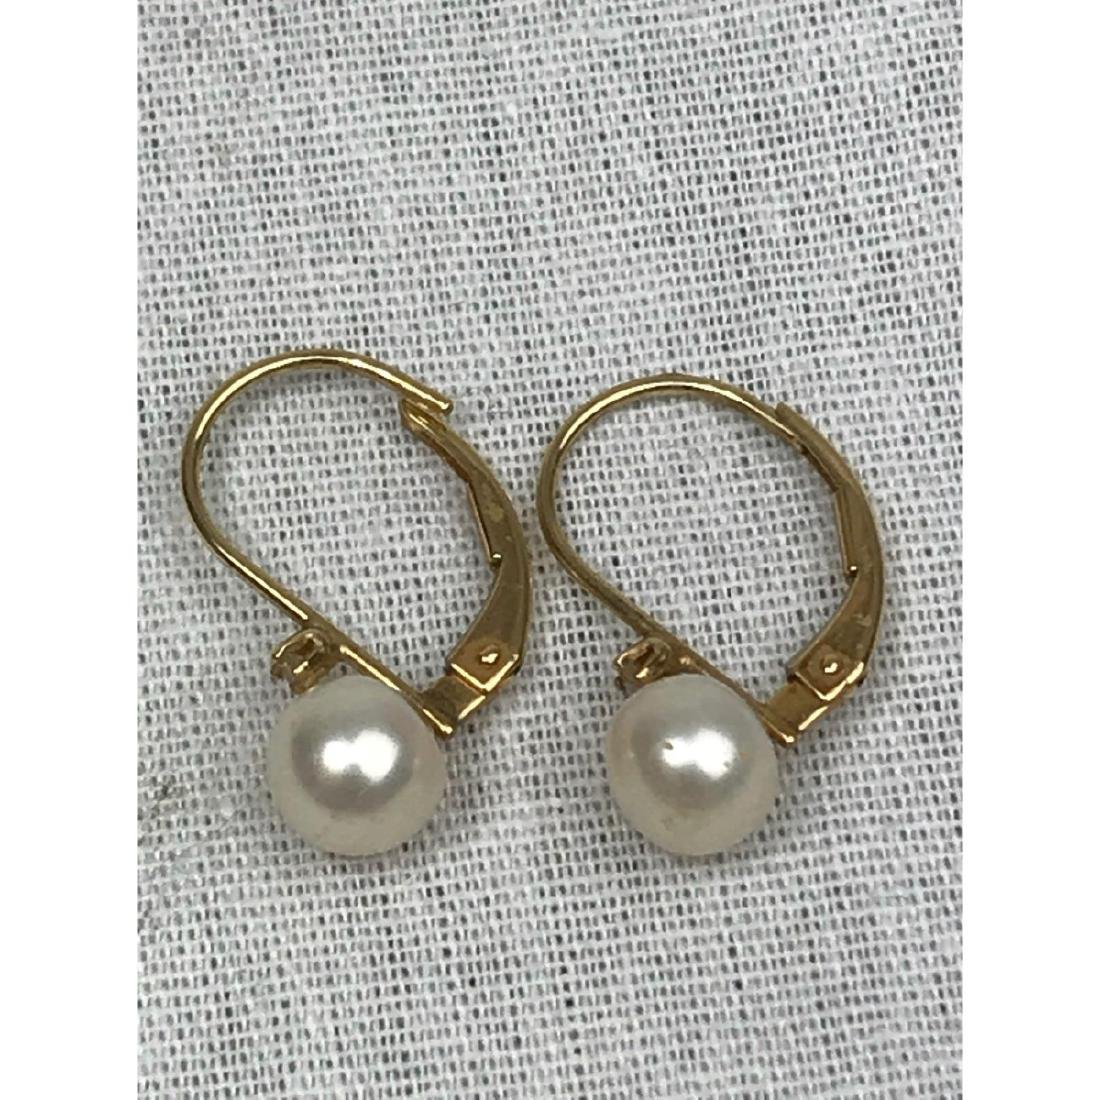 14K Gold and Pearl Earrings - 2